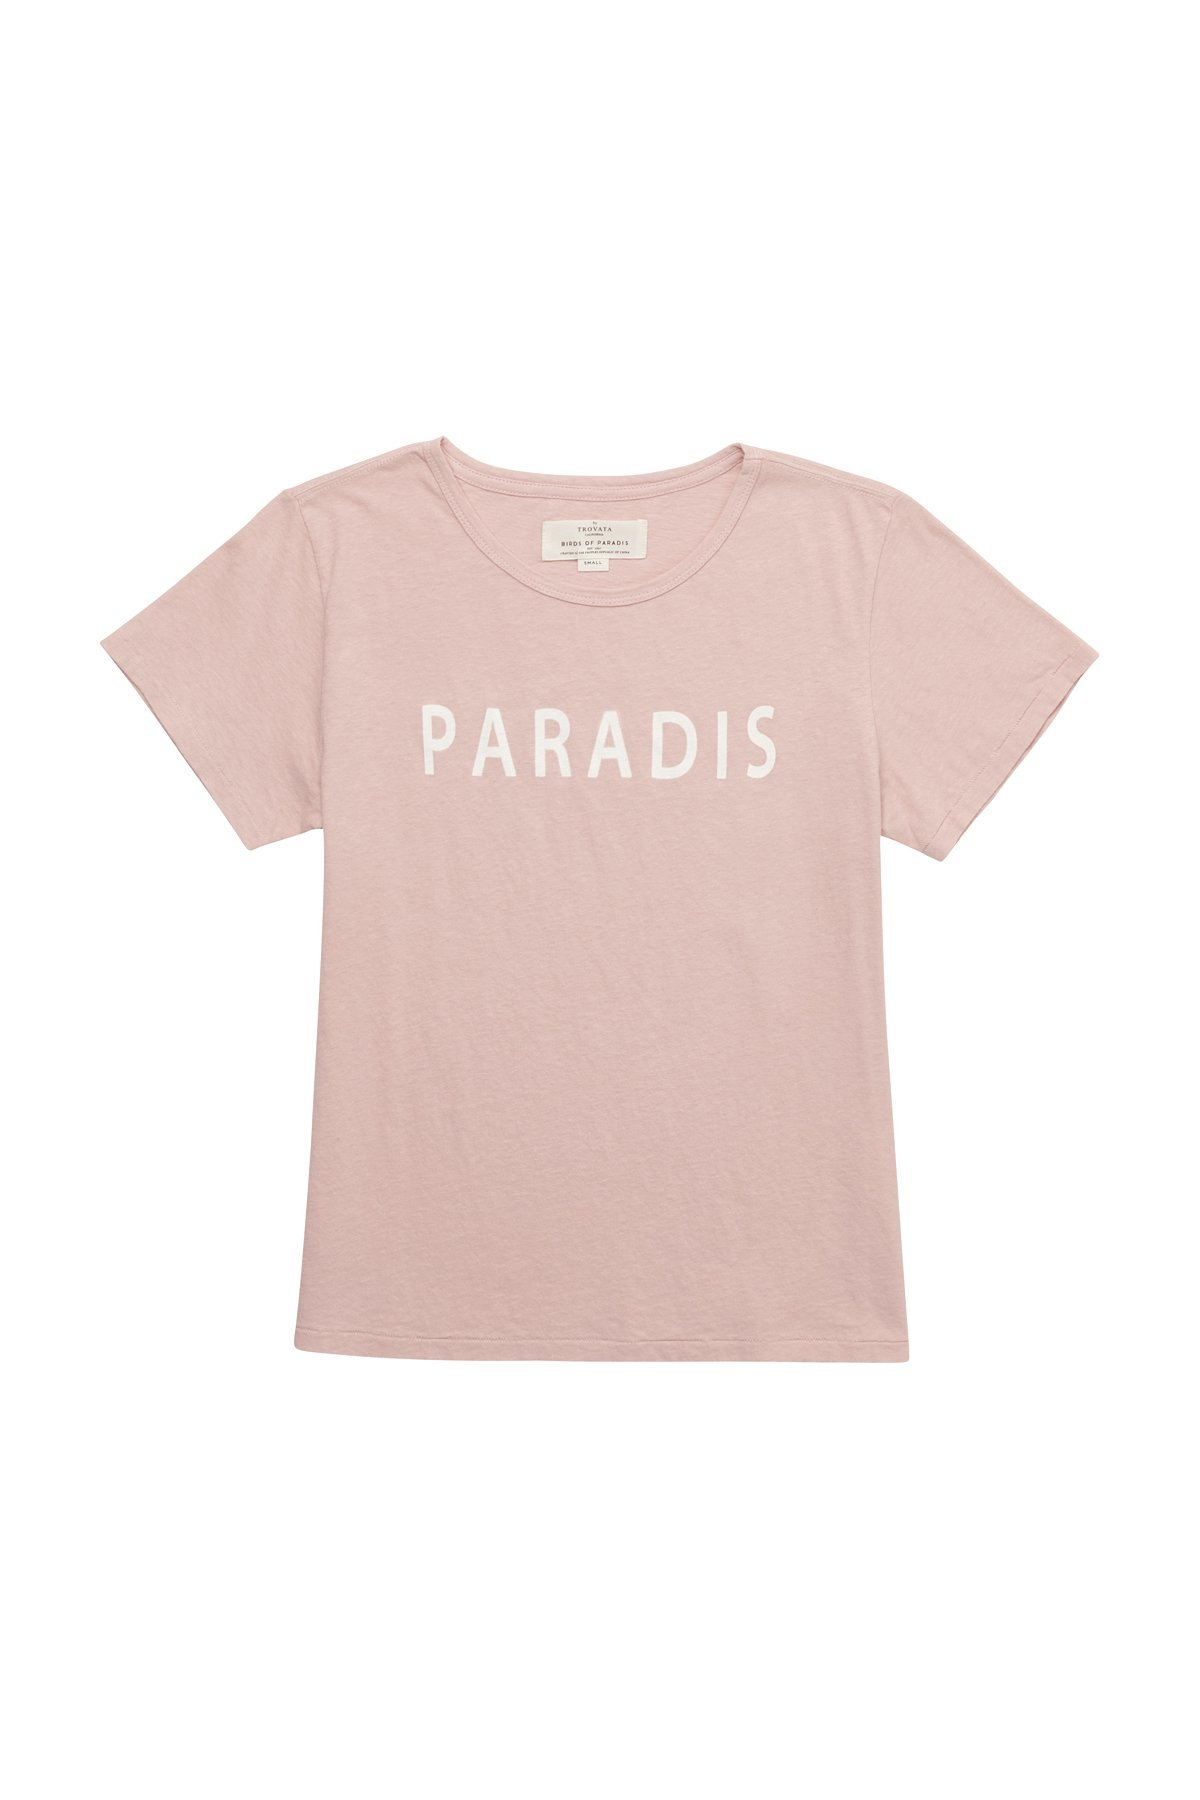 Jett T-shirt BLUSH PARADIS by Trovata - 1